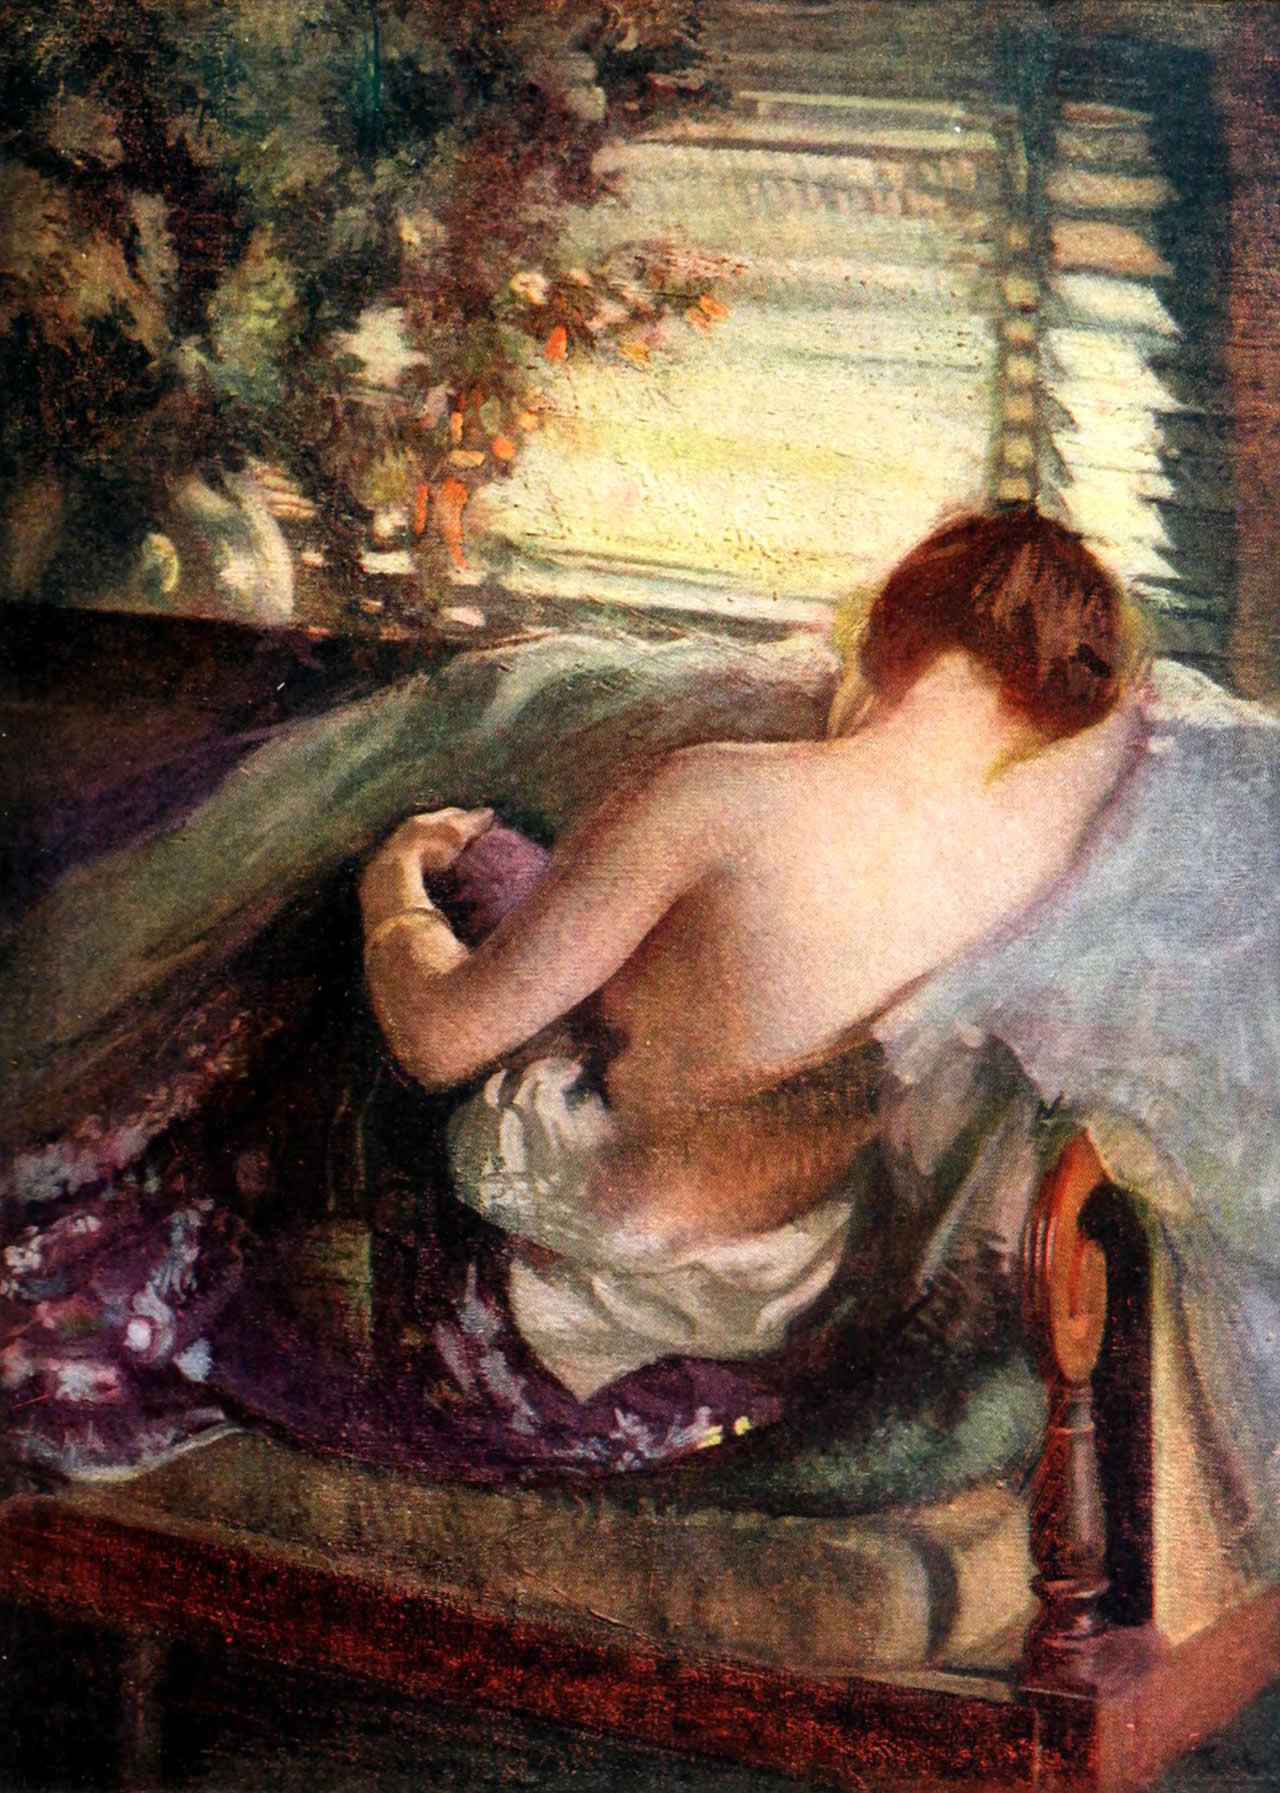 The Venetian Blind painted by Edmund Tarbell